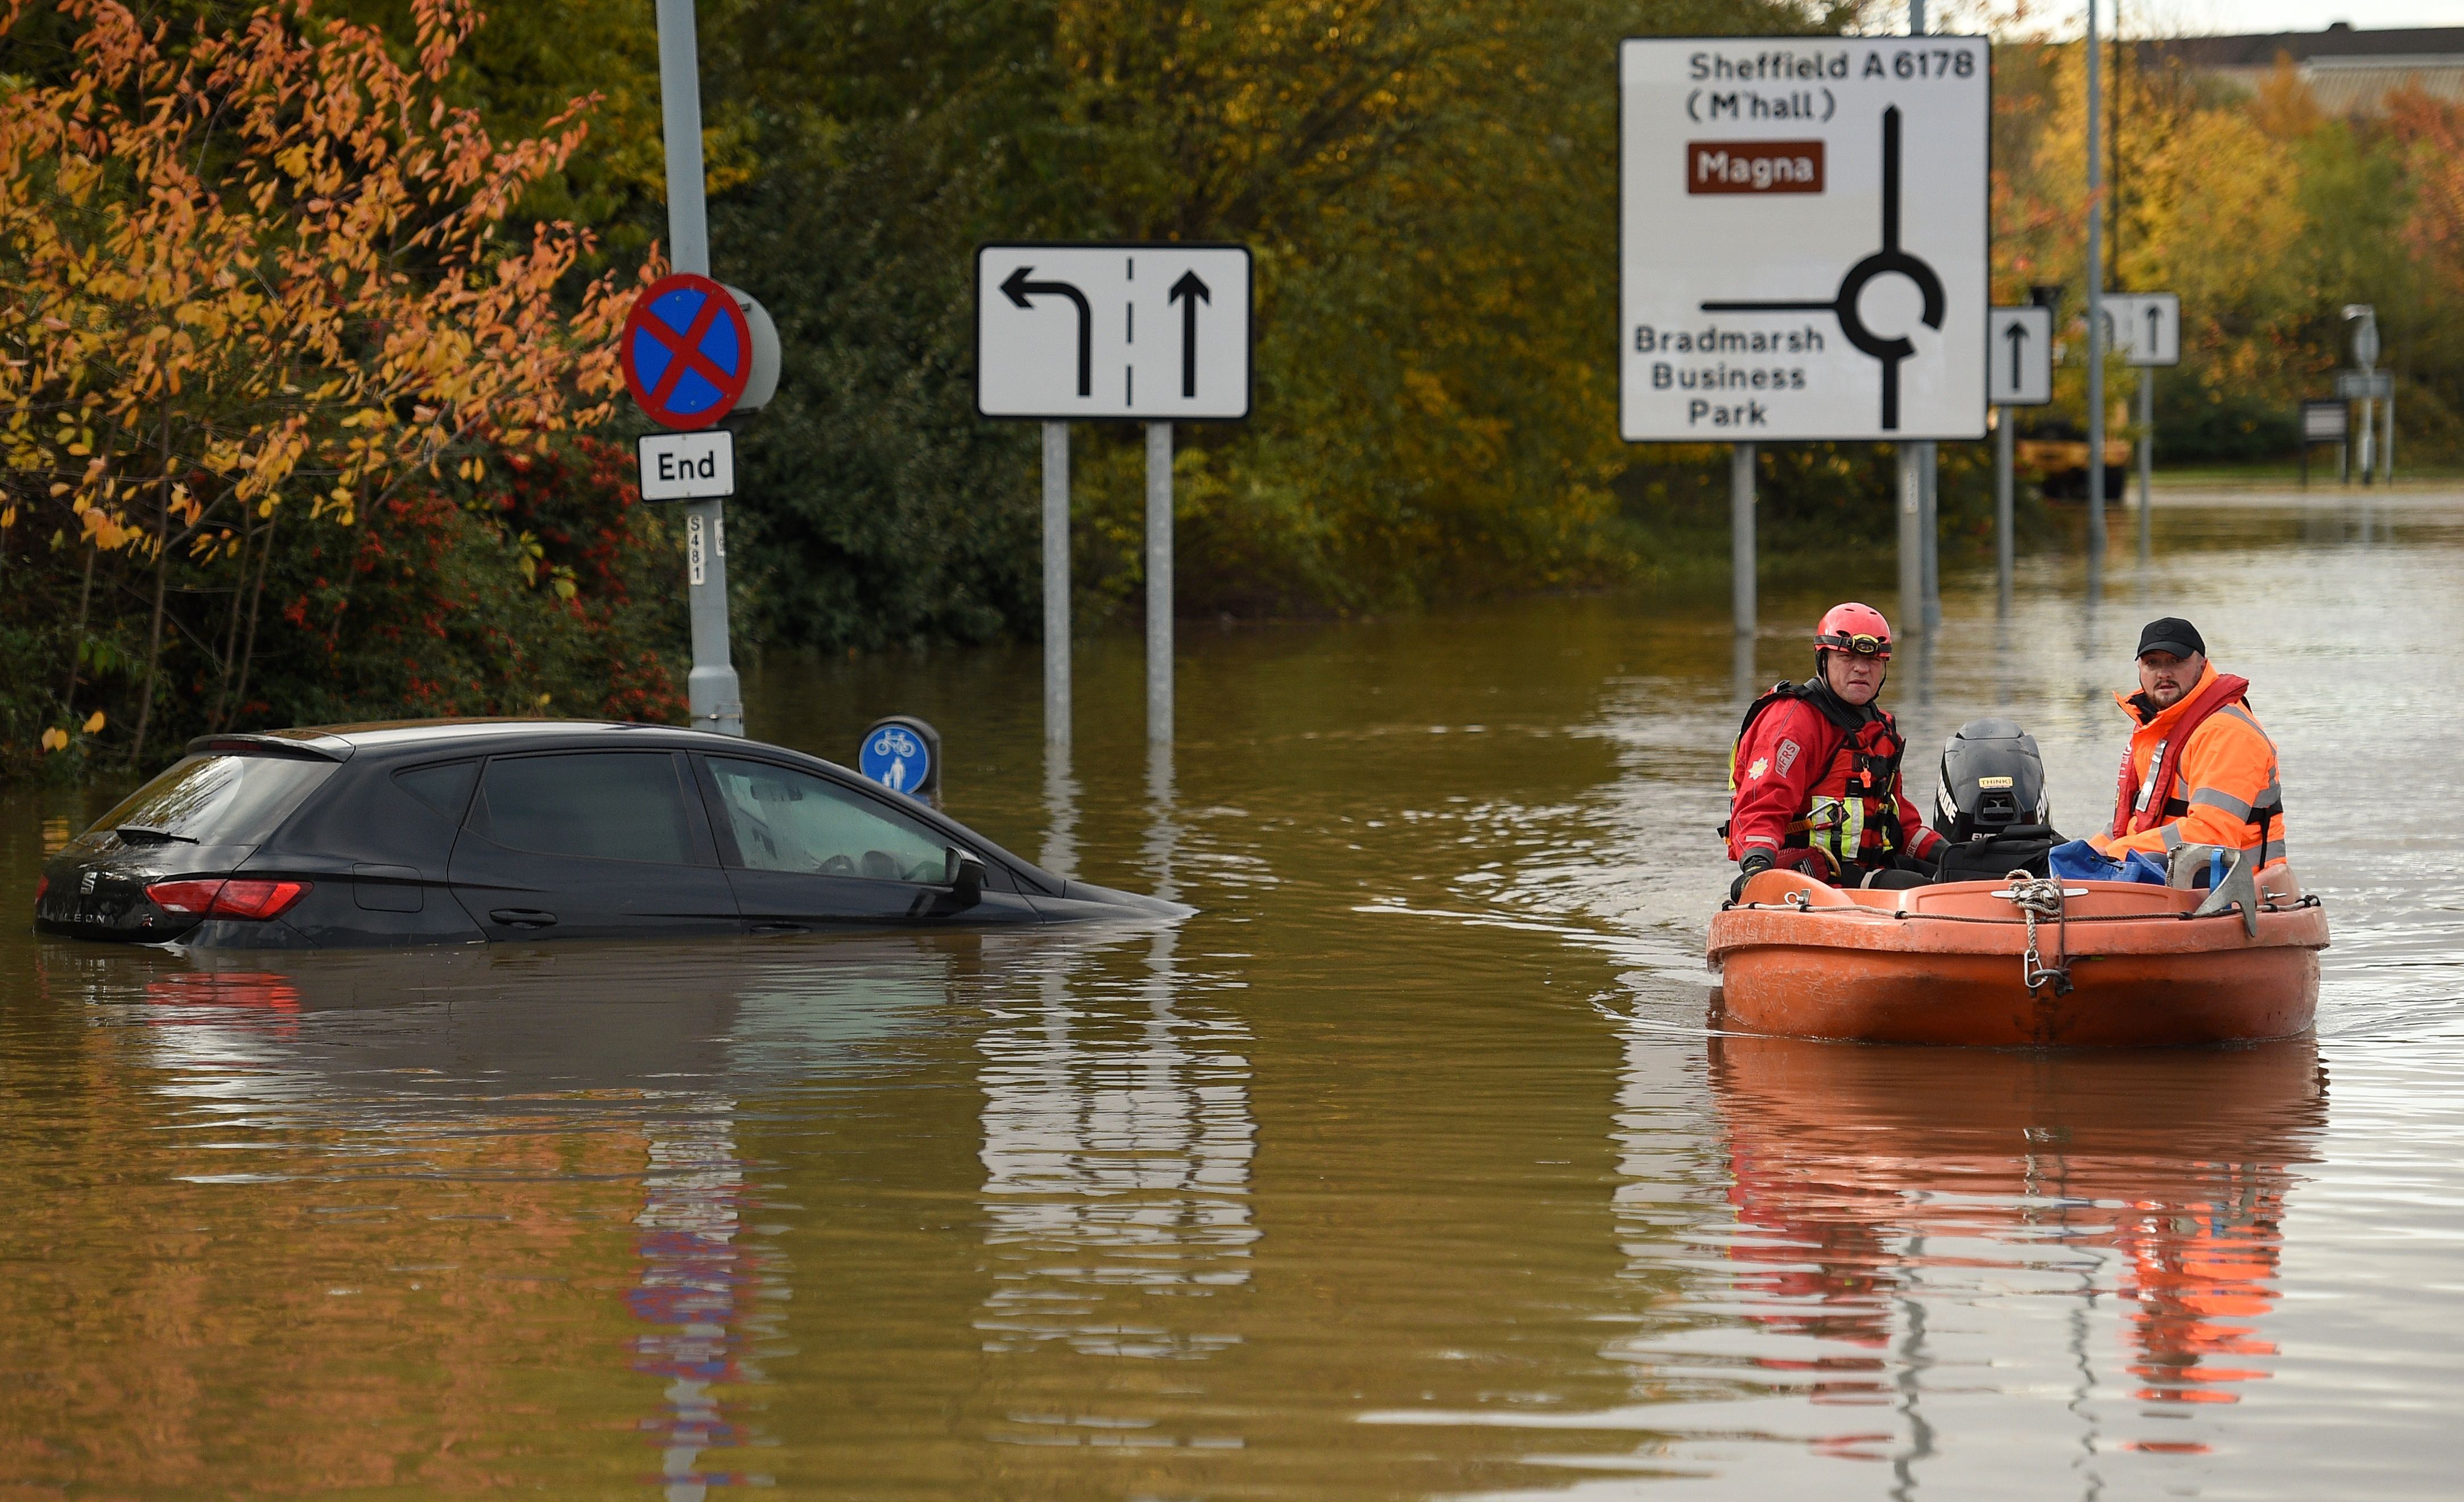 Members of the Fire and Rescue service make their way through flood water covering a flooded road in Rotherham.